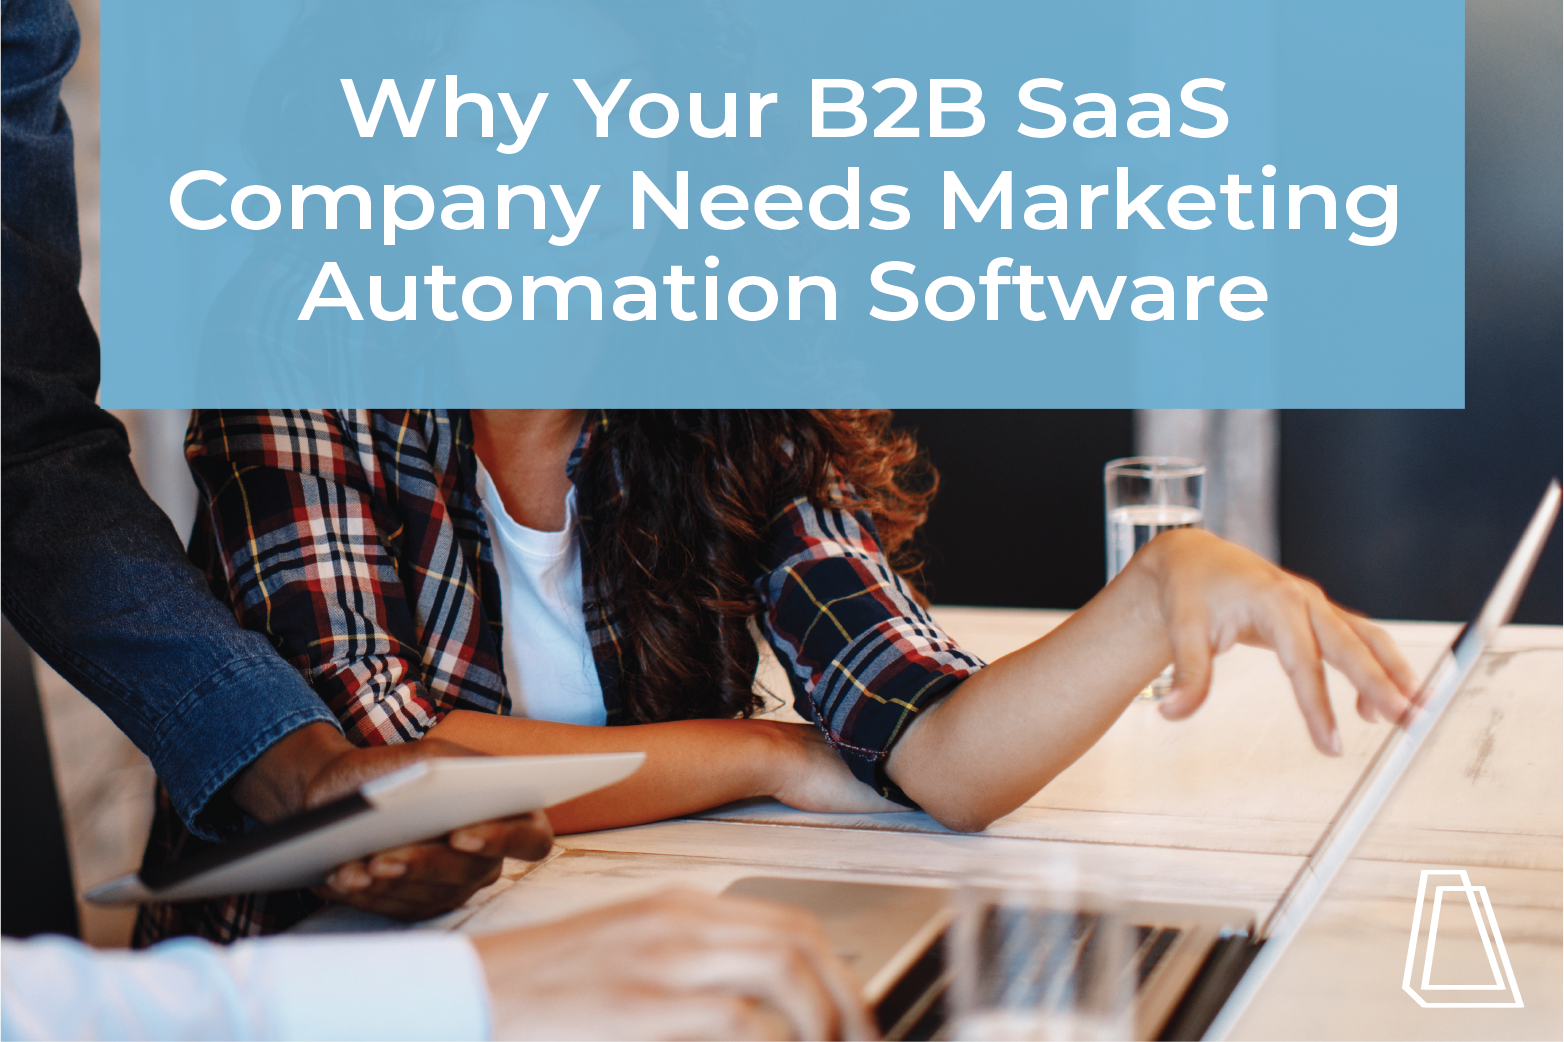 Why Your B2B SaaS Company Needs Marketing Automation Software